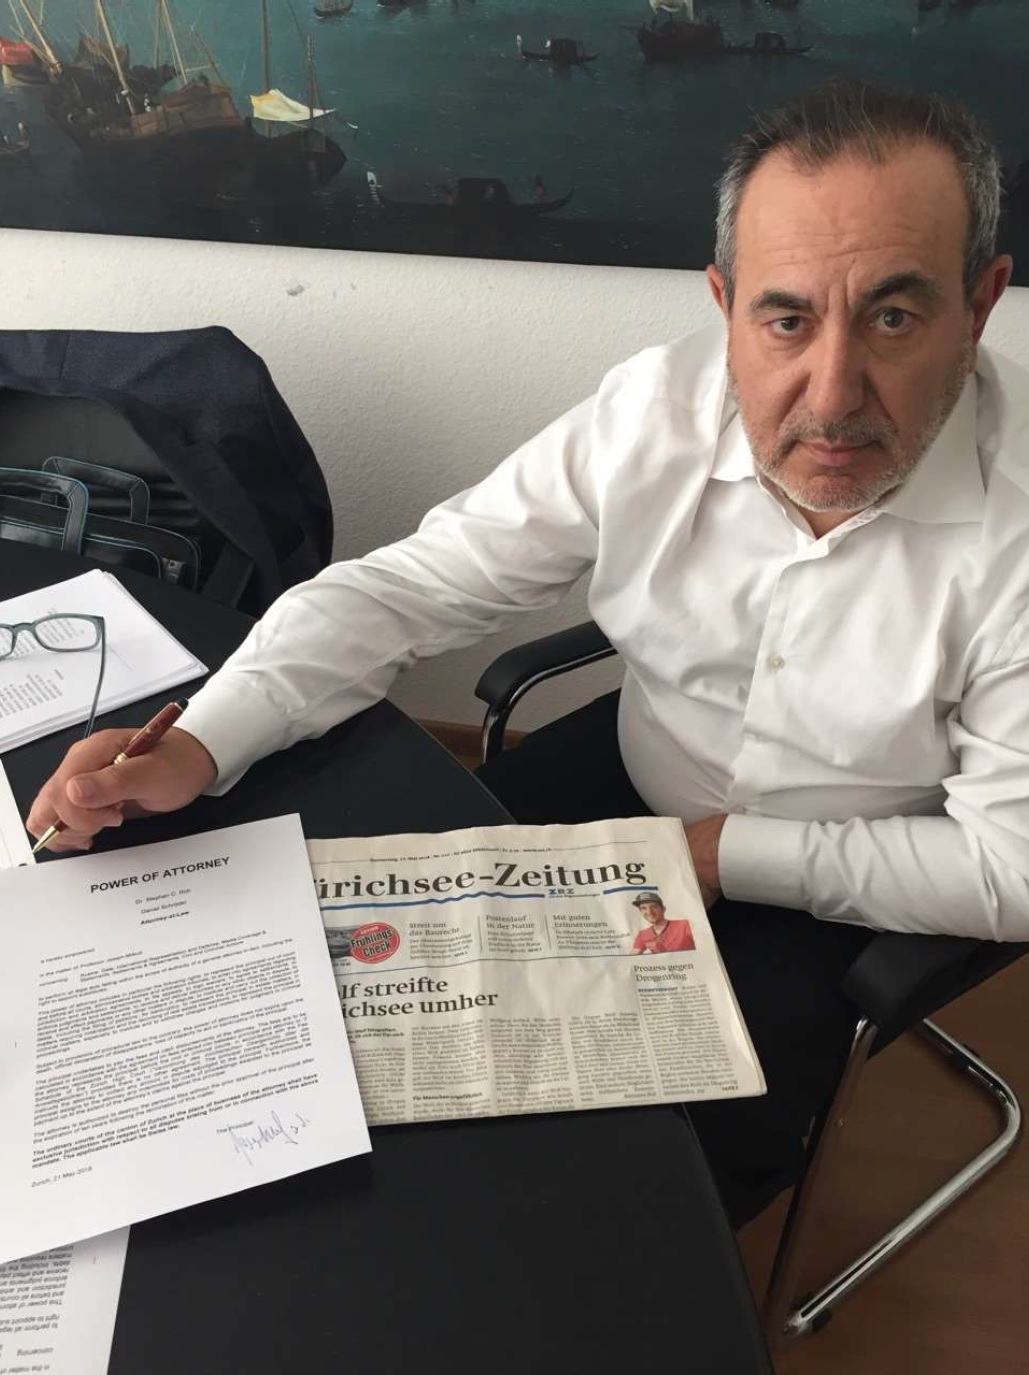 Joseph Mifsud in Zurich, Switzerland. The photo shows a signed power of attorney document